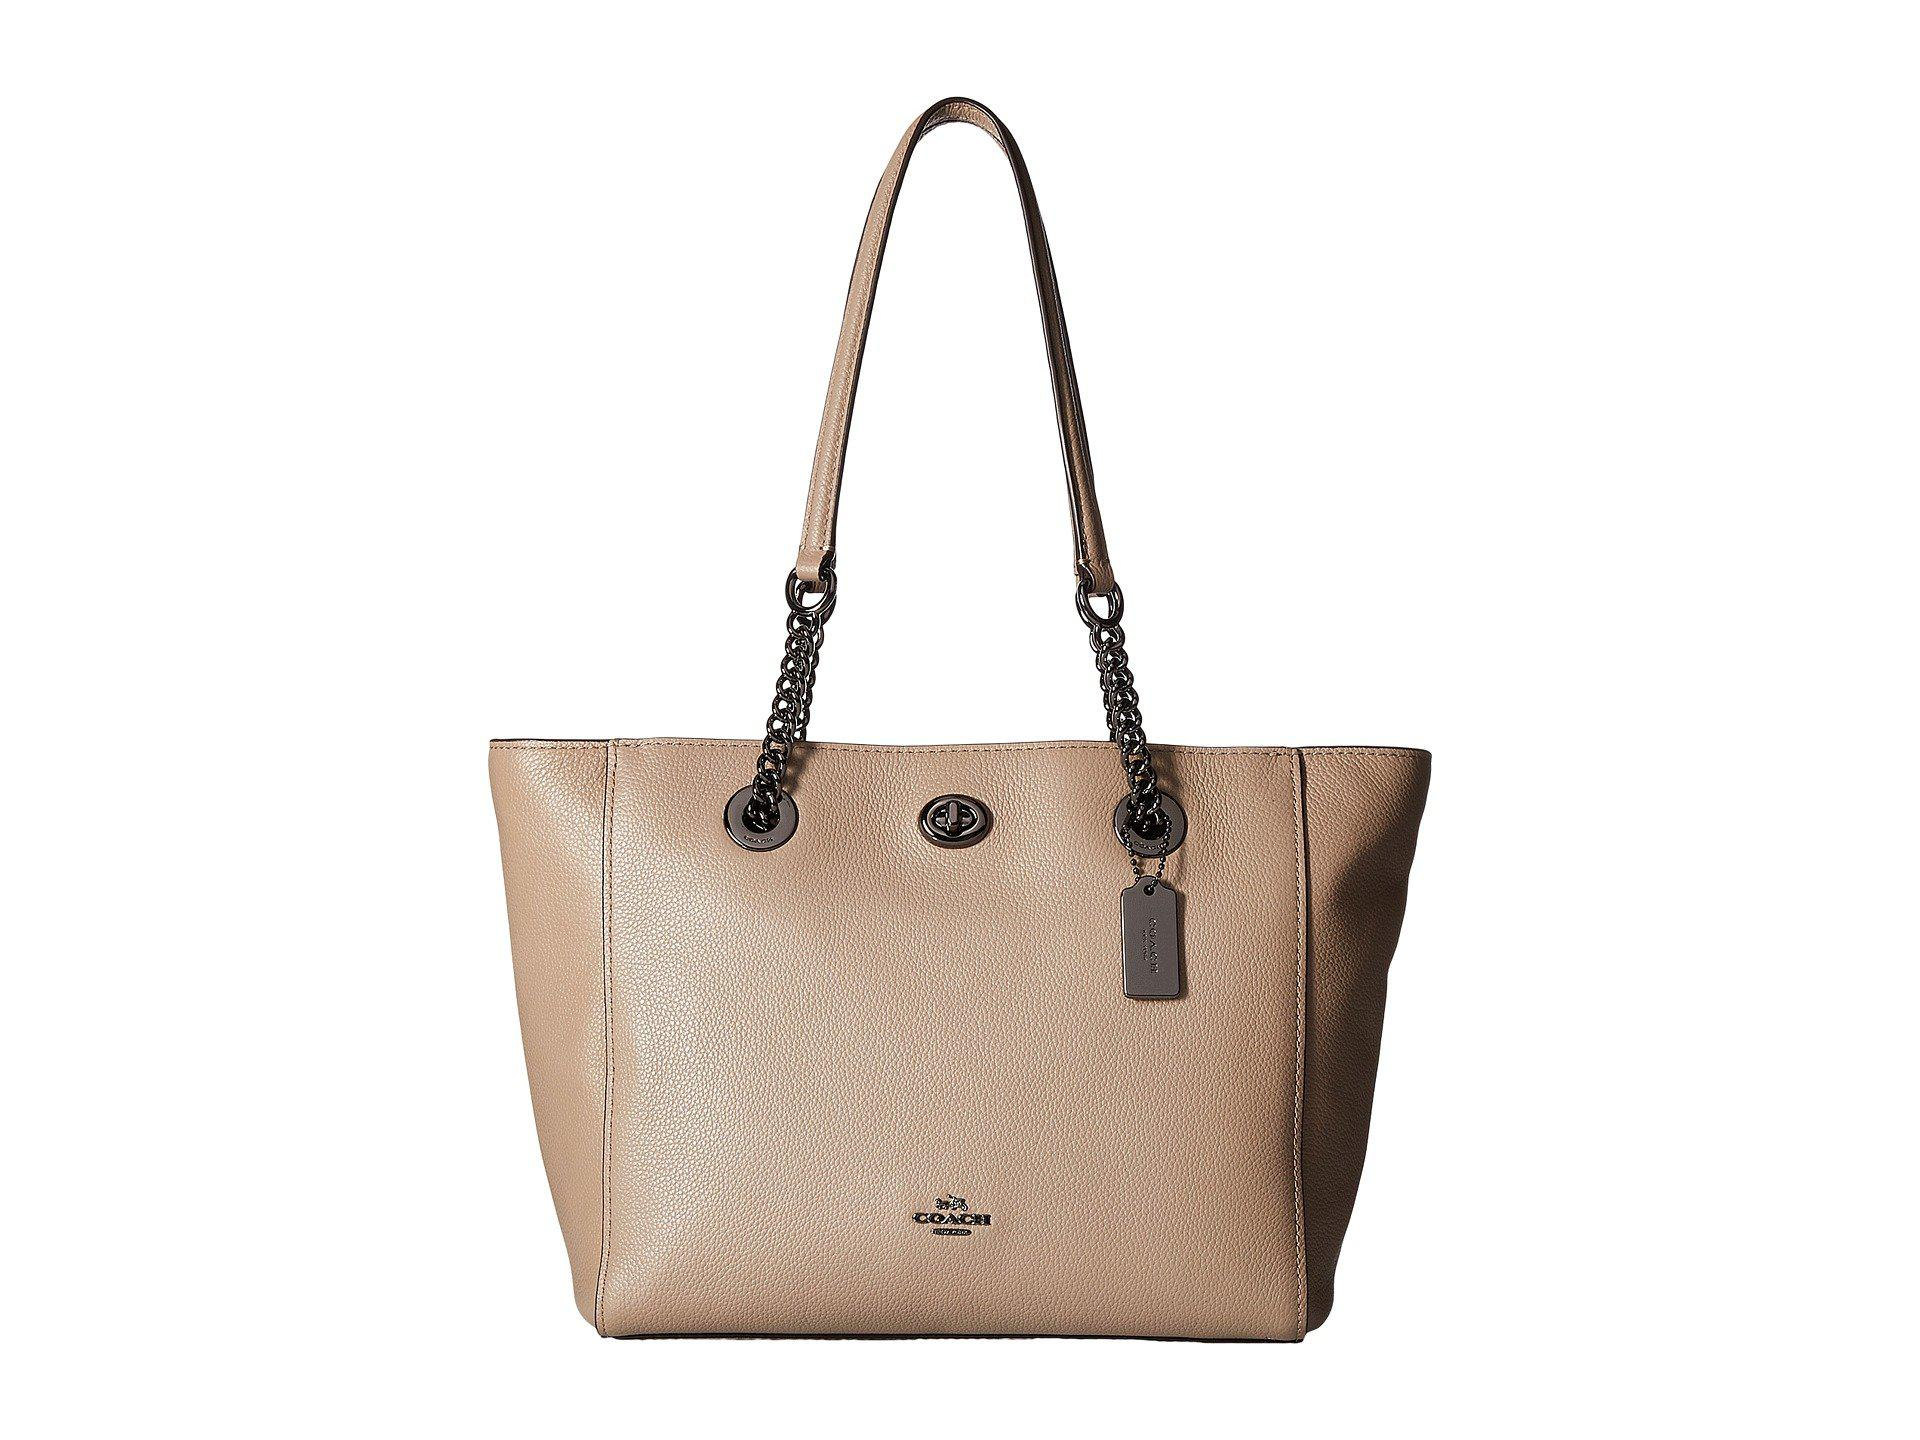 455c6c676776 Lyst - COACH Pebbled Leather Turnlock Chain Tote 27